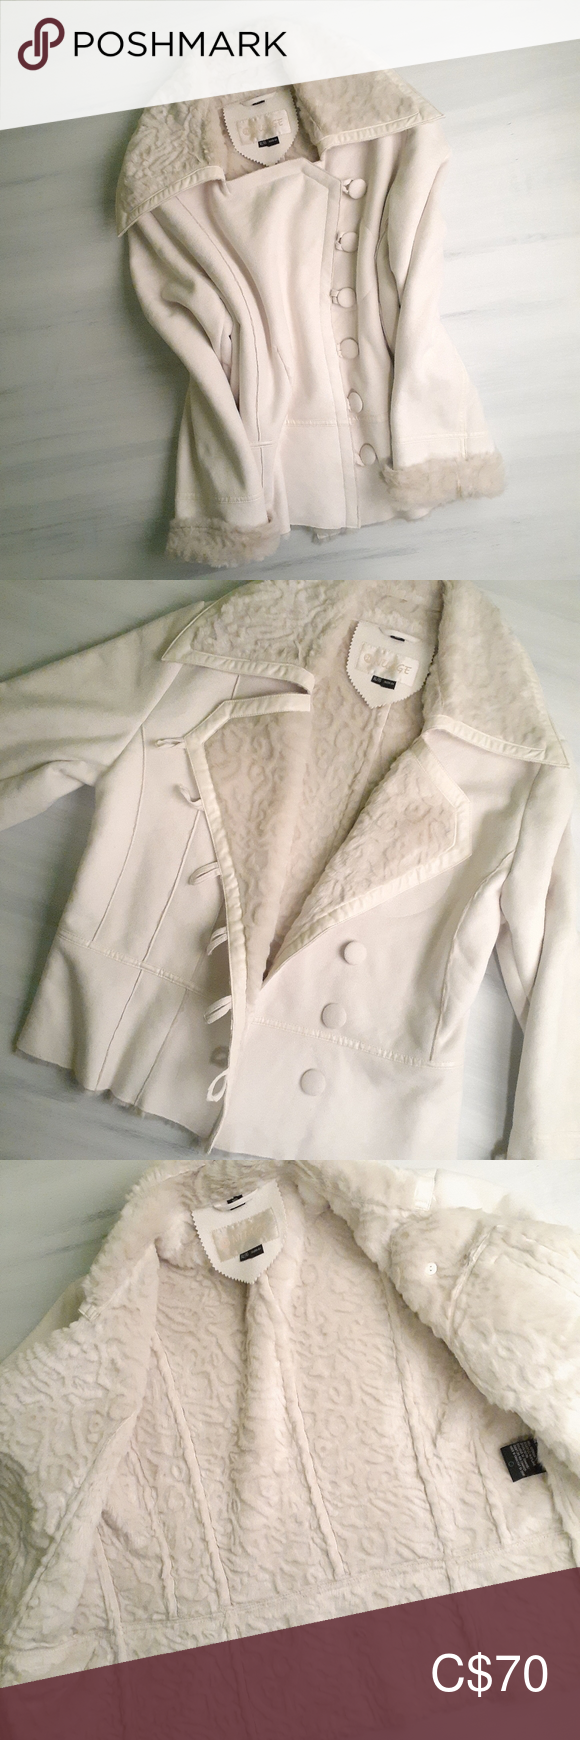 Nuage Faux Shearling Fur Coat In Ivory In 2020 Fur Coat Clothes Design Shearling